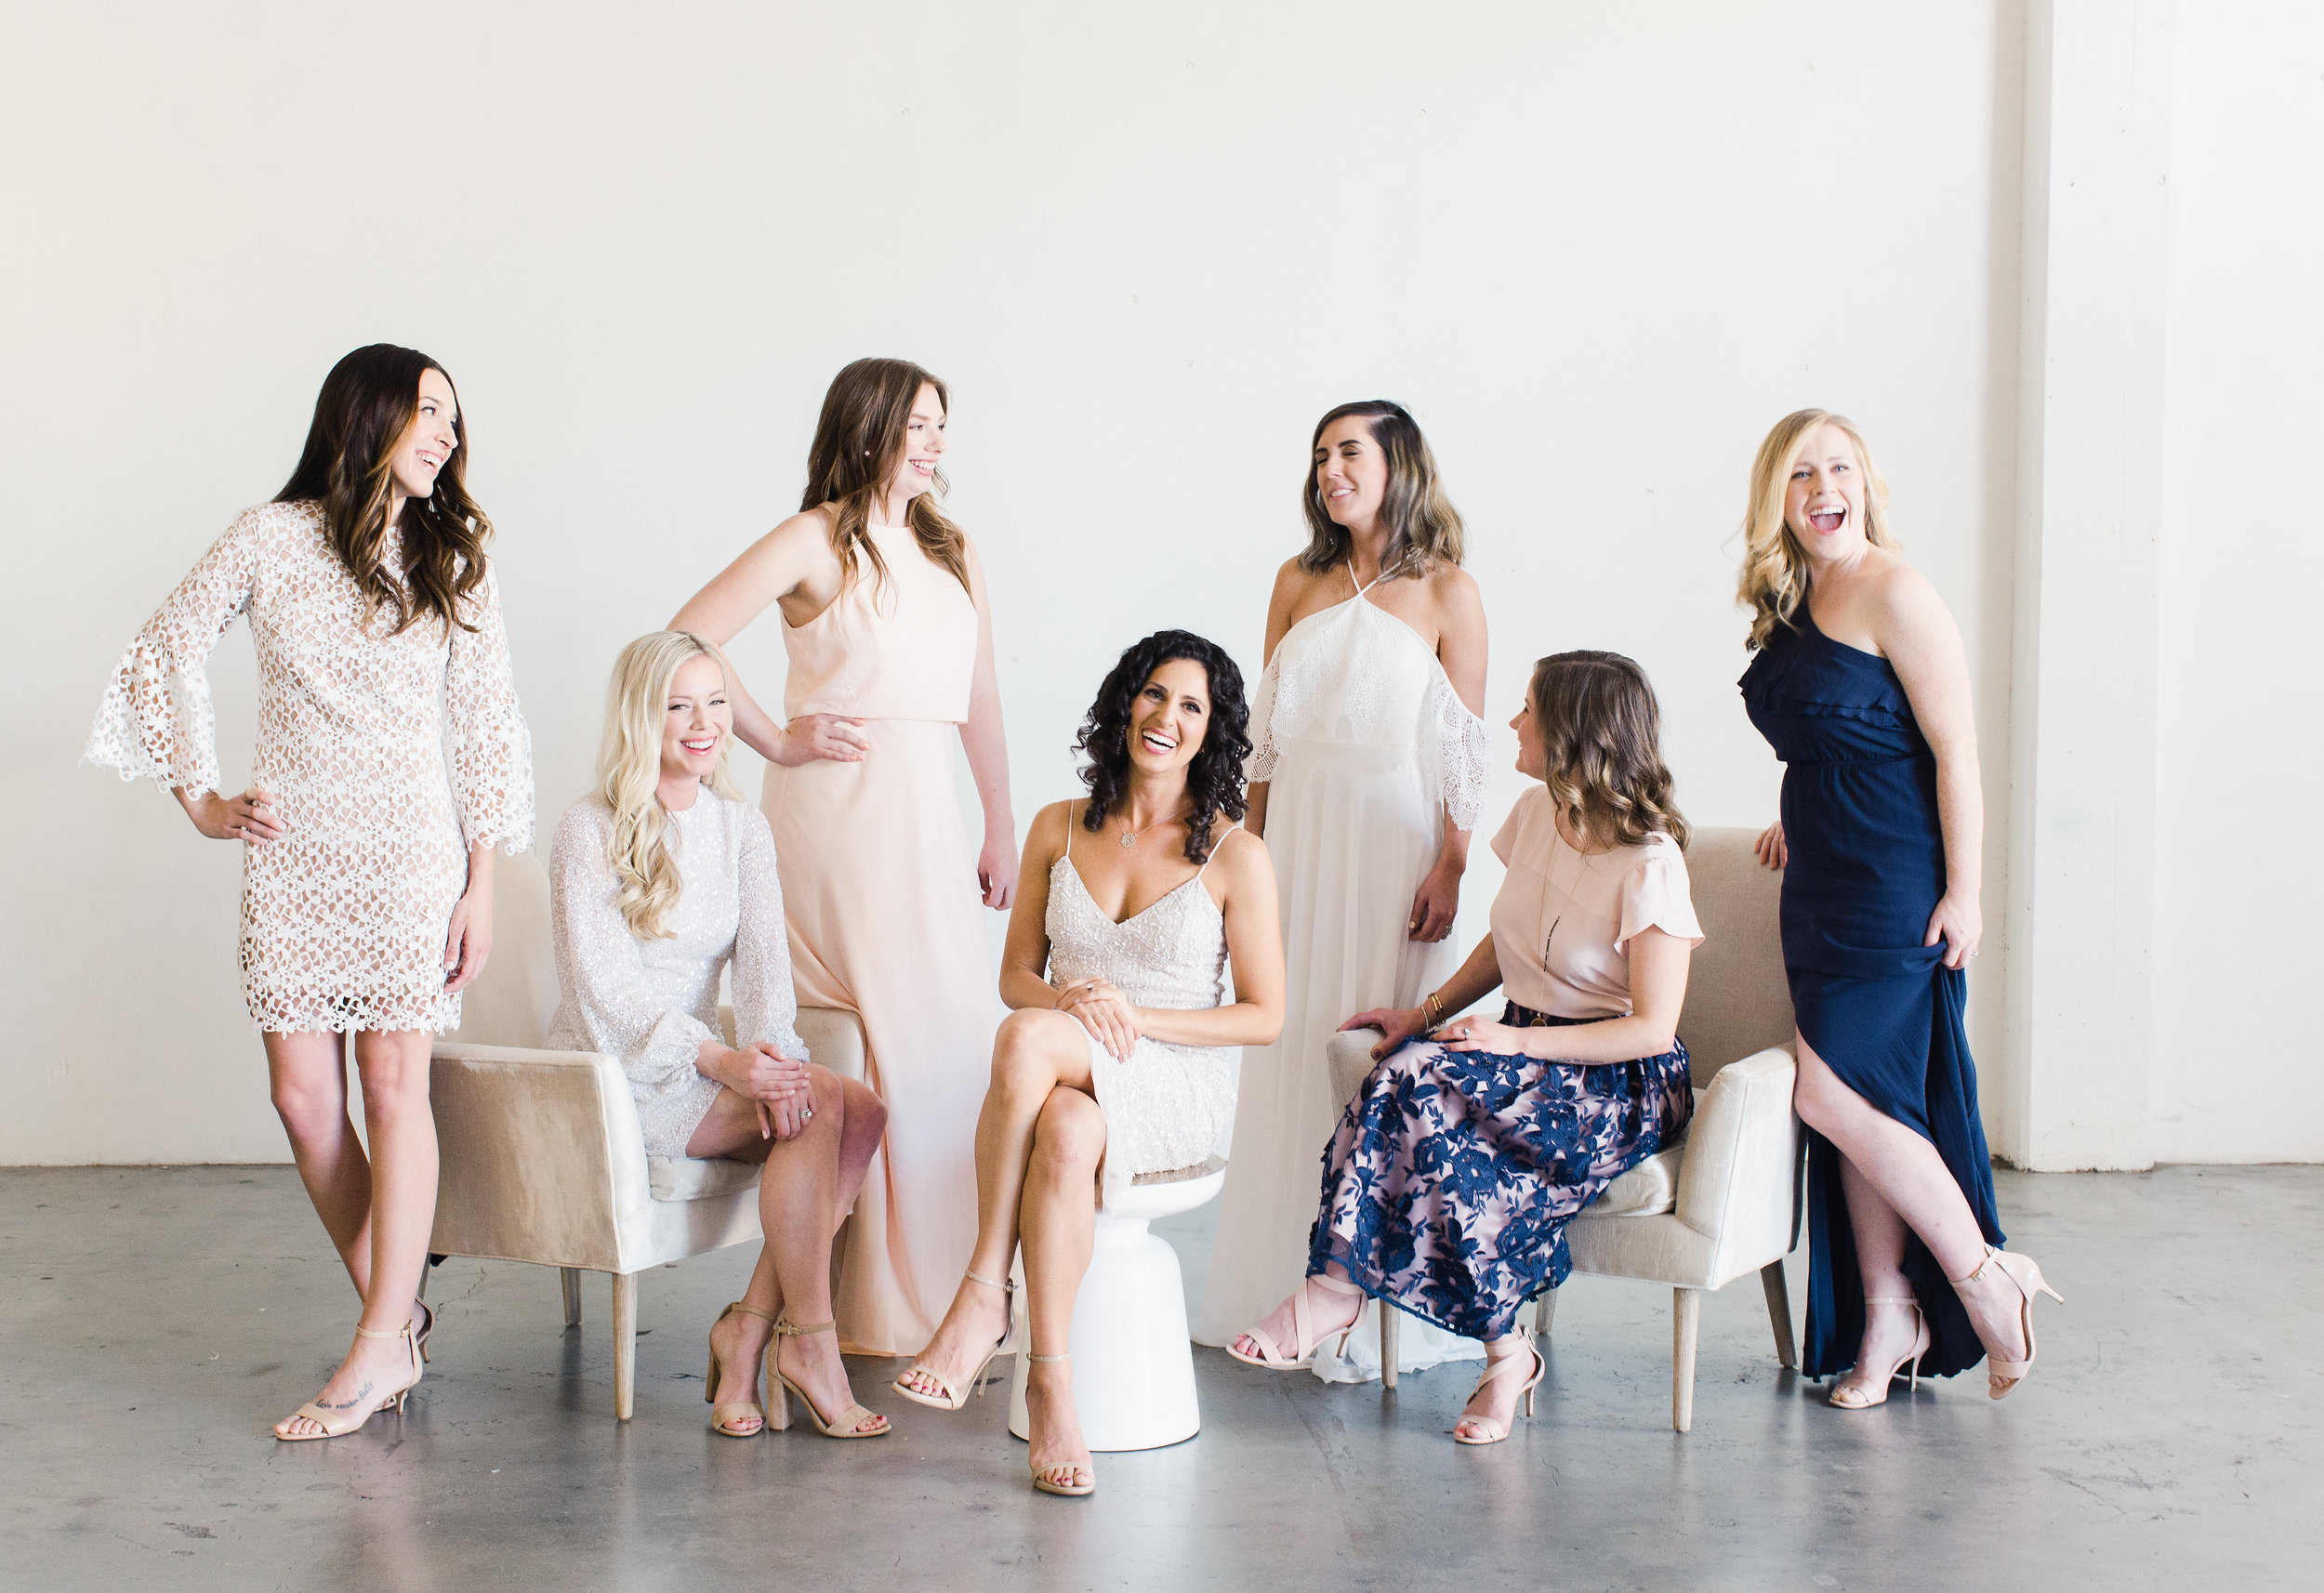 Bridalbliss.com | Portland Seattle Bend Wedding Planner | Oregon Washington Event Design | Amanda K Photography